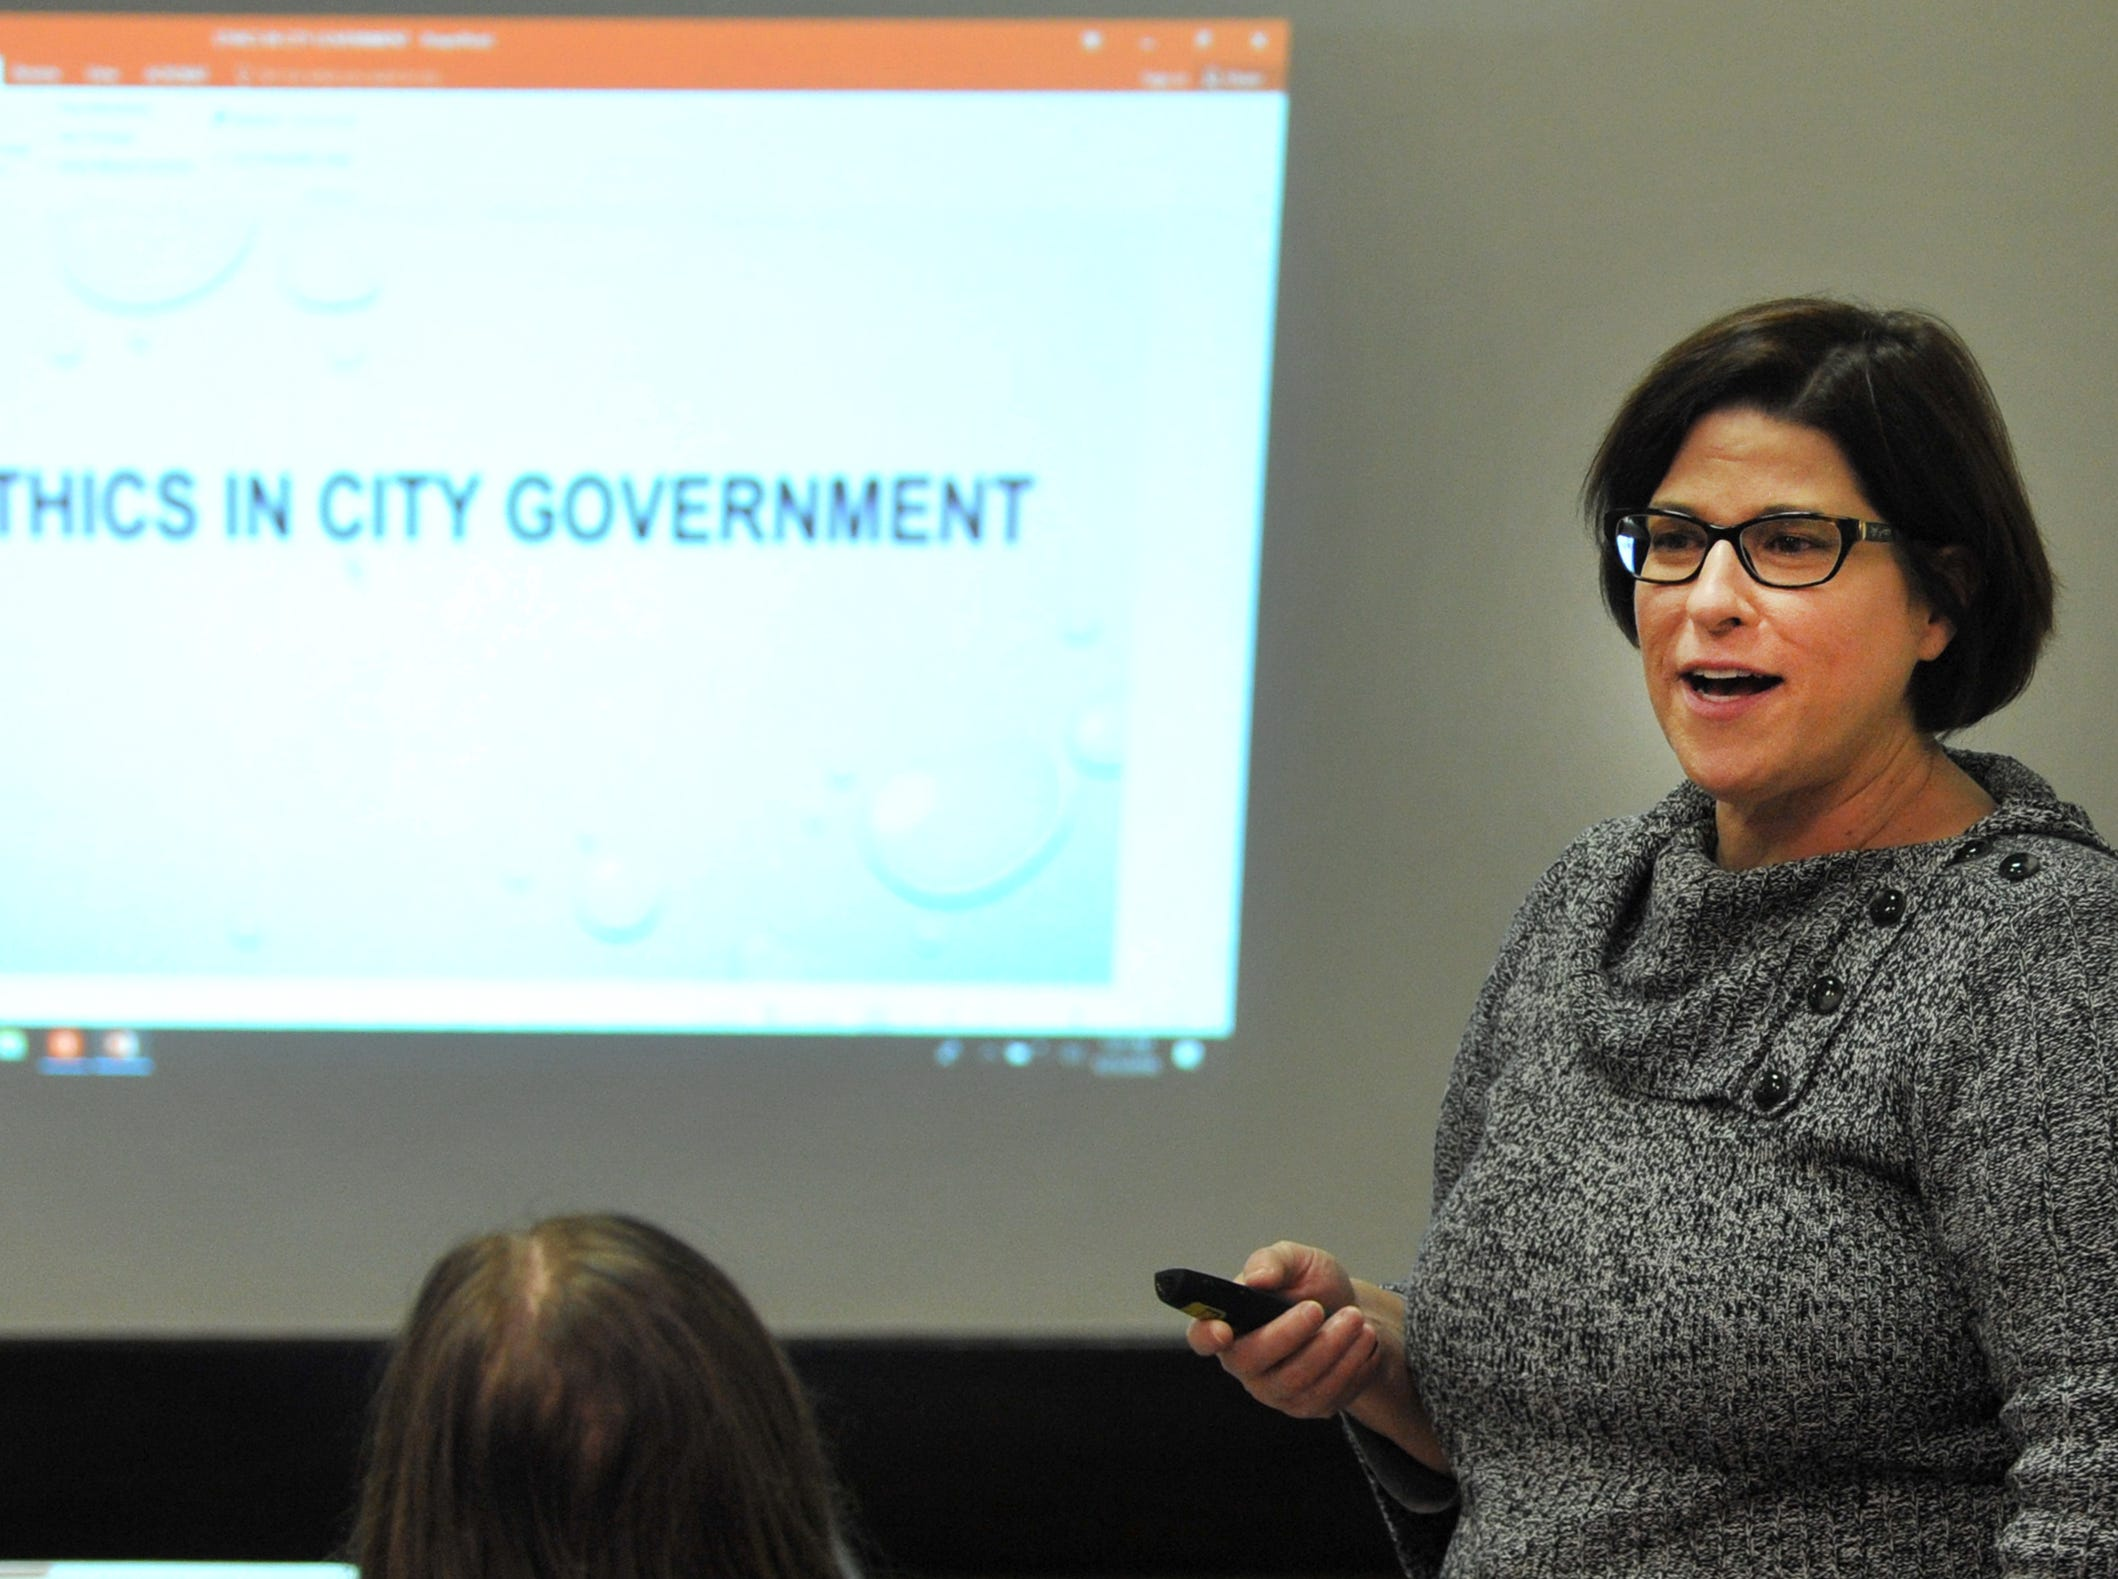 City of Wichita Falls attorney reviews ethics policy at League of Women Voters meeting